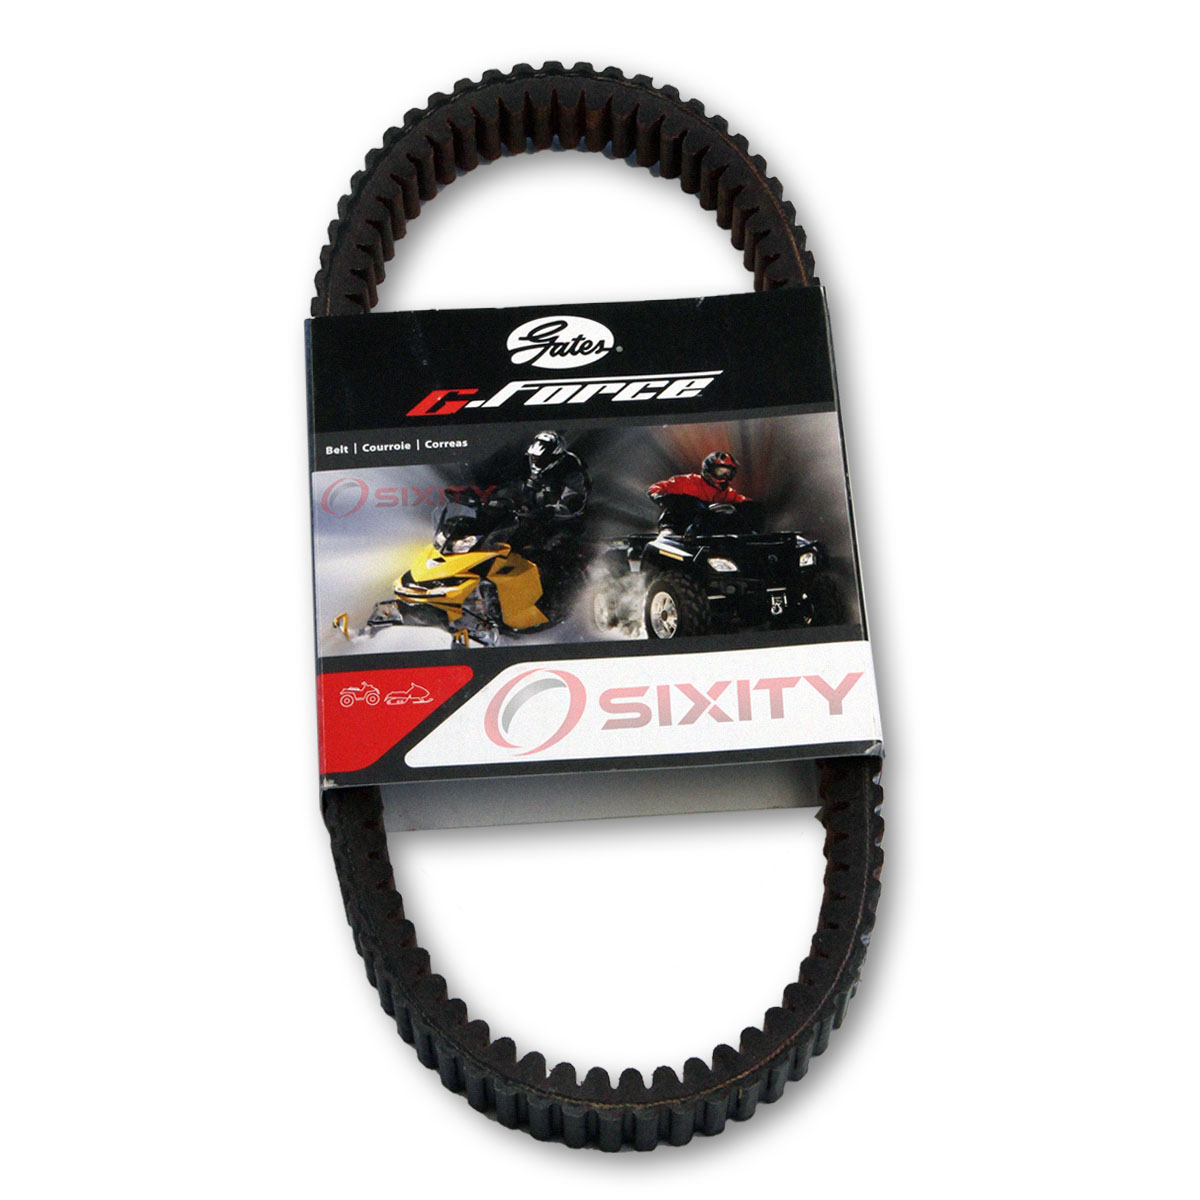 gates 11g3218 g force atv drive belt 0823 228 823228 kevlar aramid gates 11g3218 g force atv drive belt 0823 228 823228 kevlar aramid cvt heavy kt